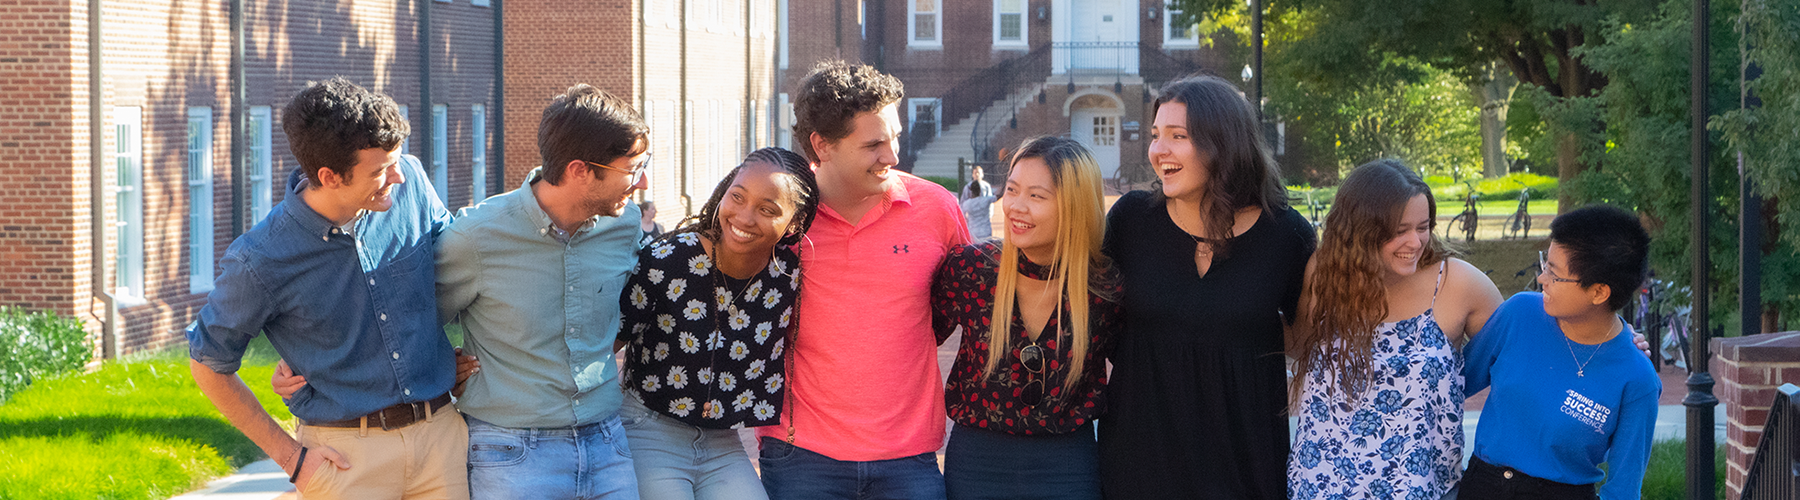 A group of diverse students with arms around their shoulders, laughing and smiling.